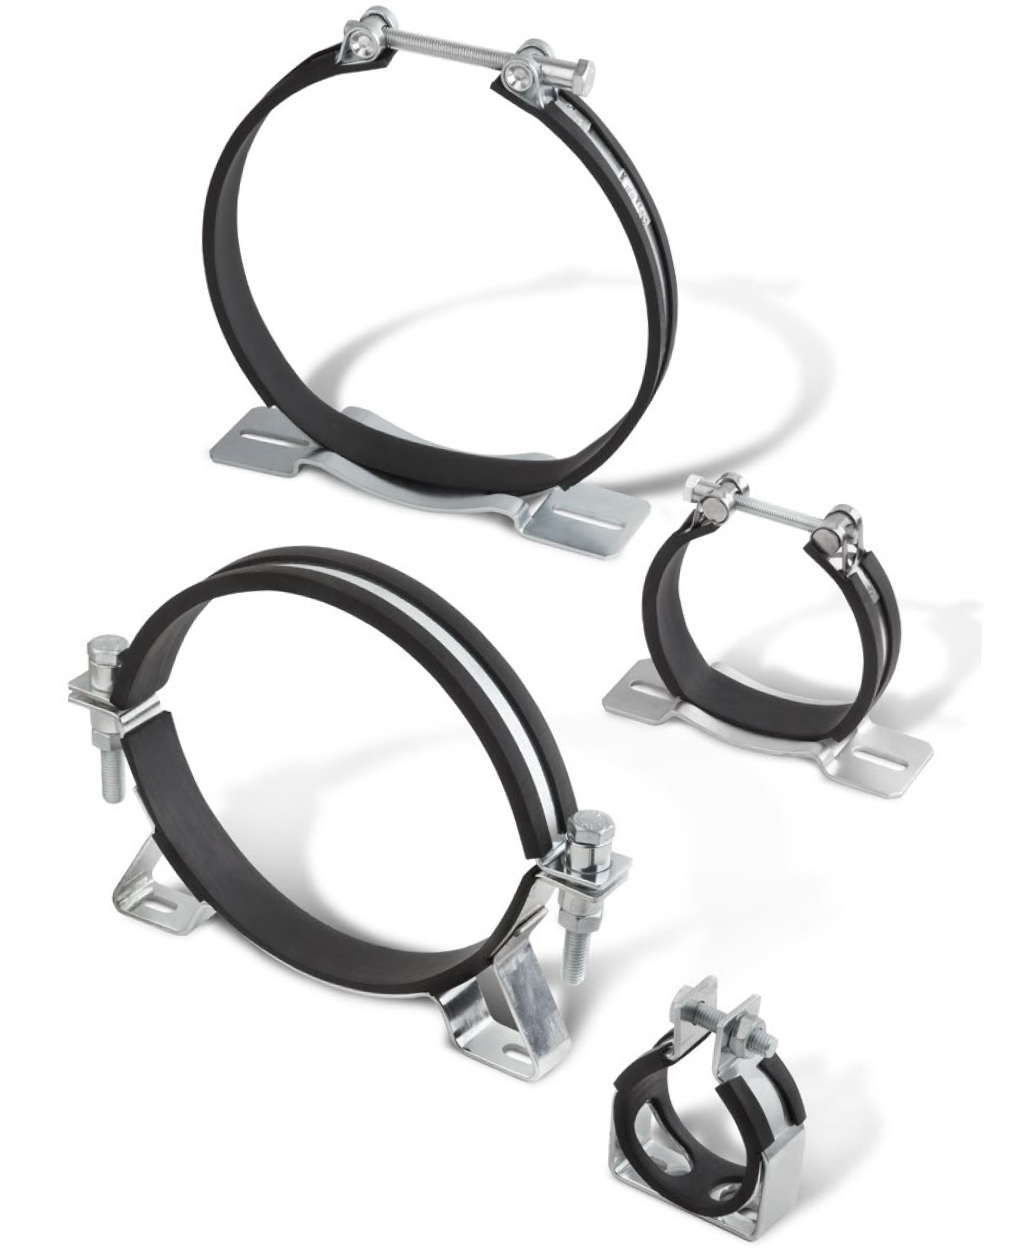 Vessel Mounting Clamps